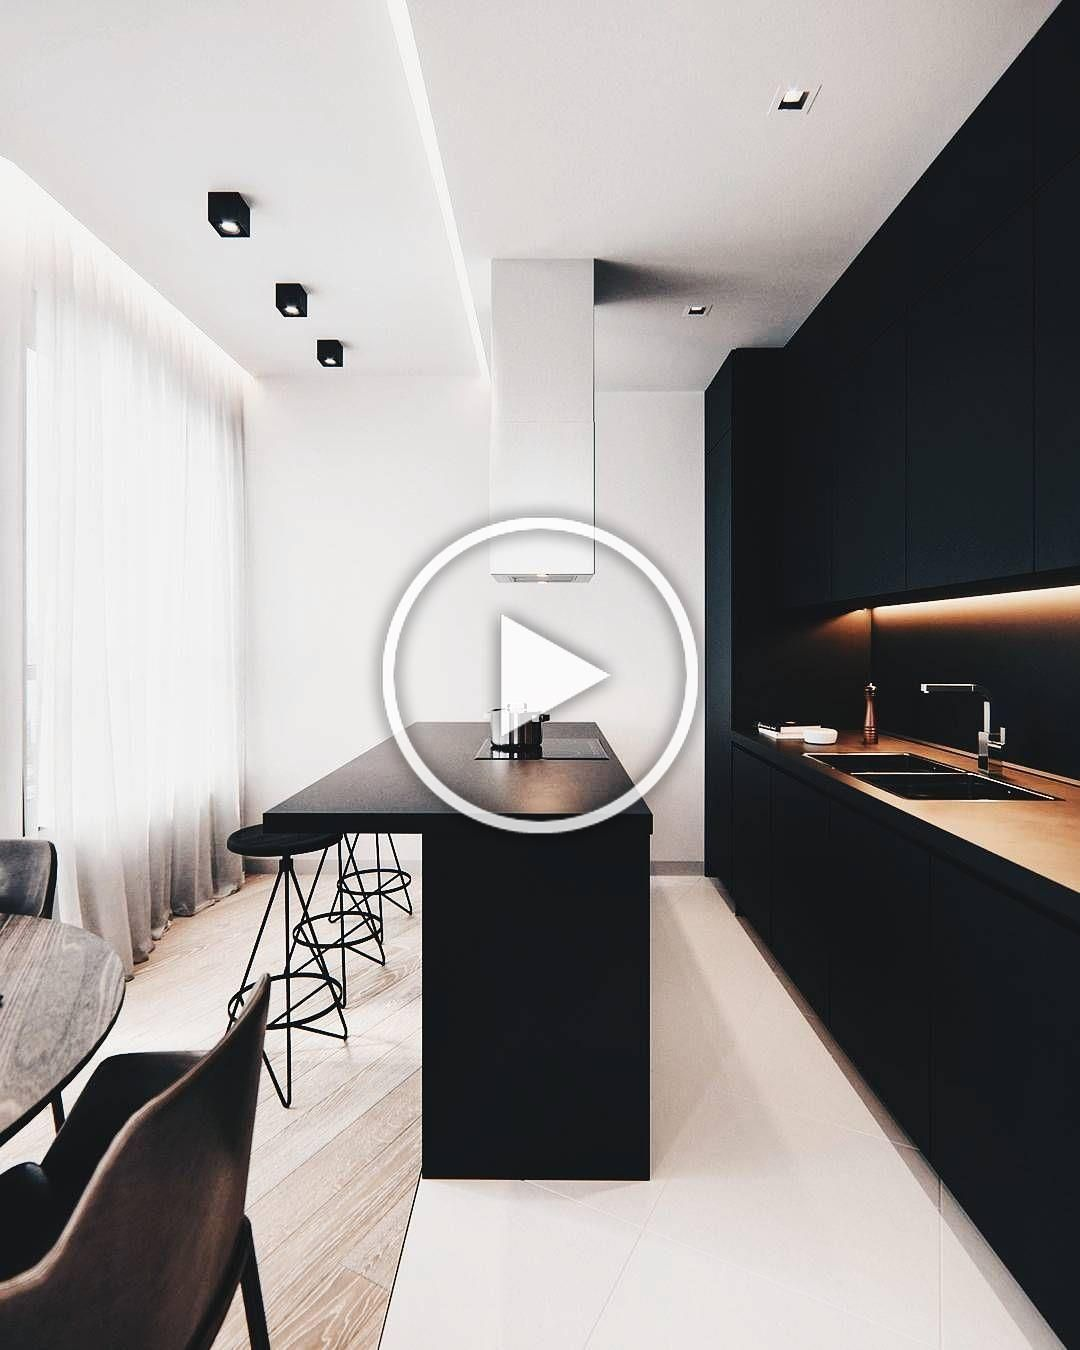 Stark black and white kitchen via @allofarchitecture. Notice how recessed fixtures are integral part of the design. Shop recessed lighting (click photo)  #modern #modernlighting #modernliving #moderninterior #modernhouse #modernhome #modernstyle #moderndesign #design #designinspo #interiordesign #homedesign #interiordesigner #professionaldesigner #homedesigner #housedesign #designing #homedesigninspiration #lighting #home #interiors #howyouhome #homeideas